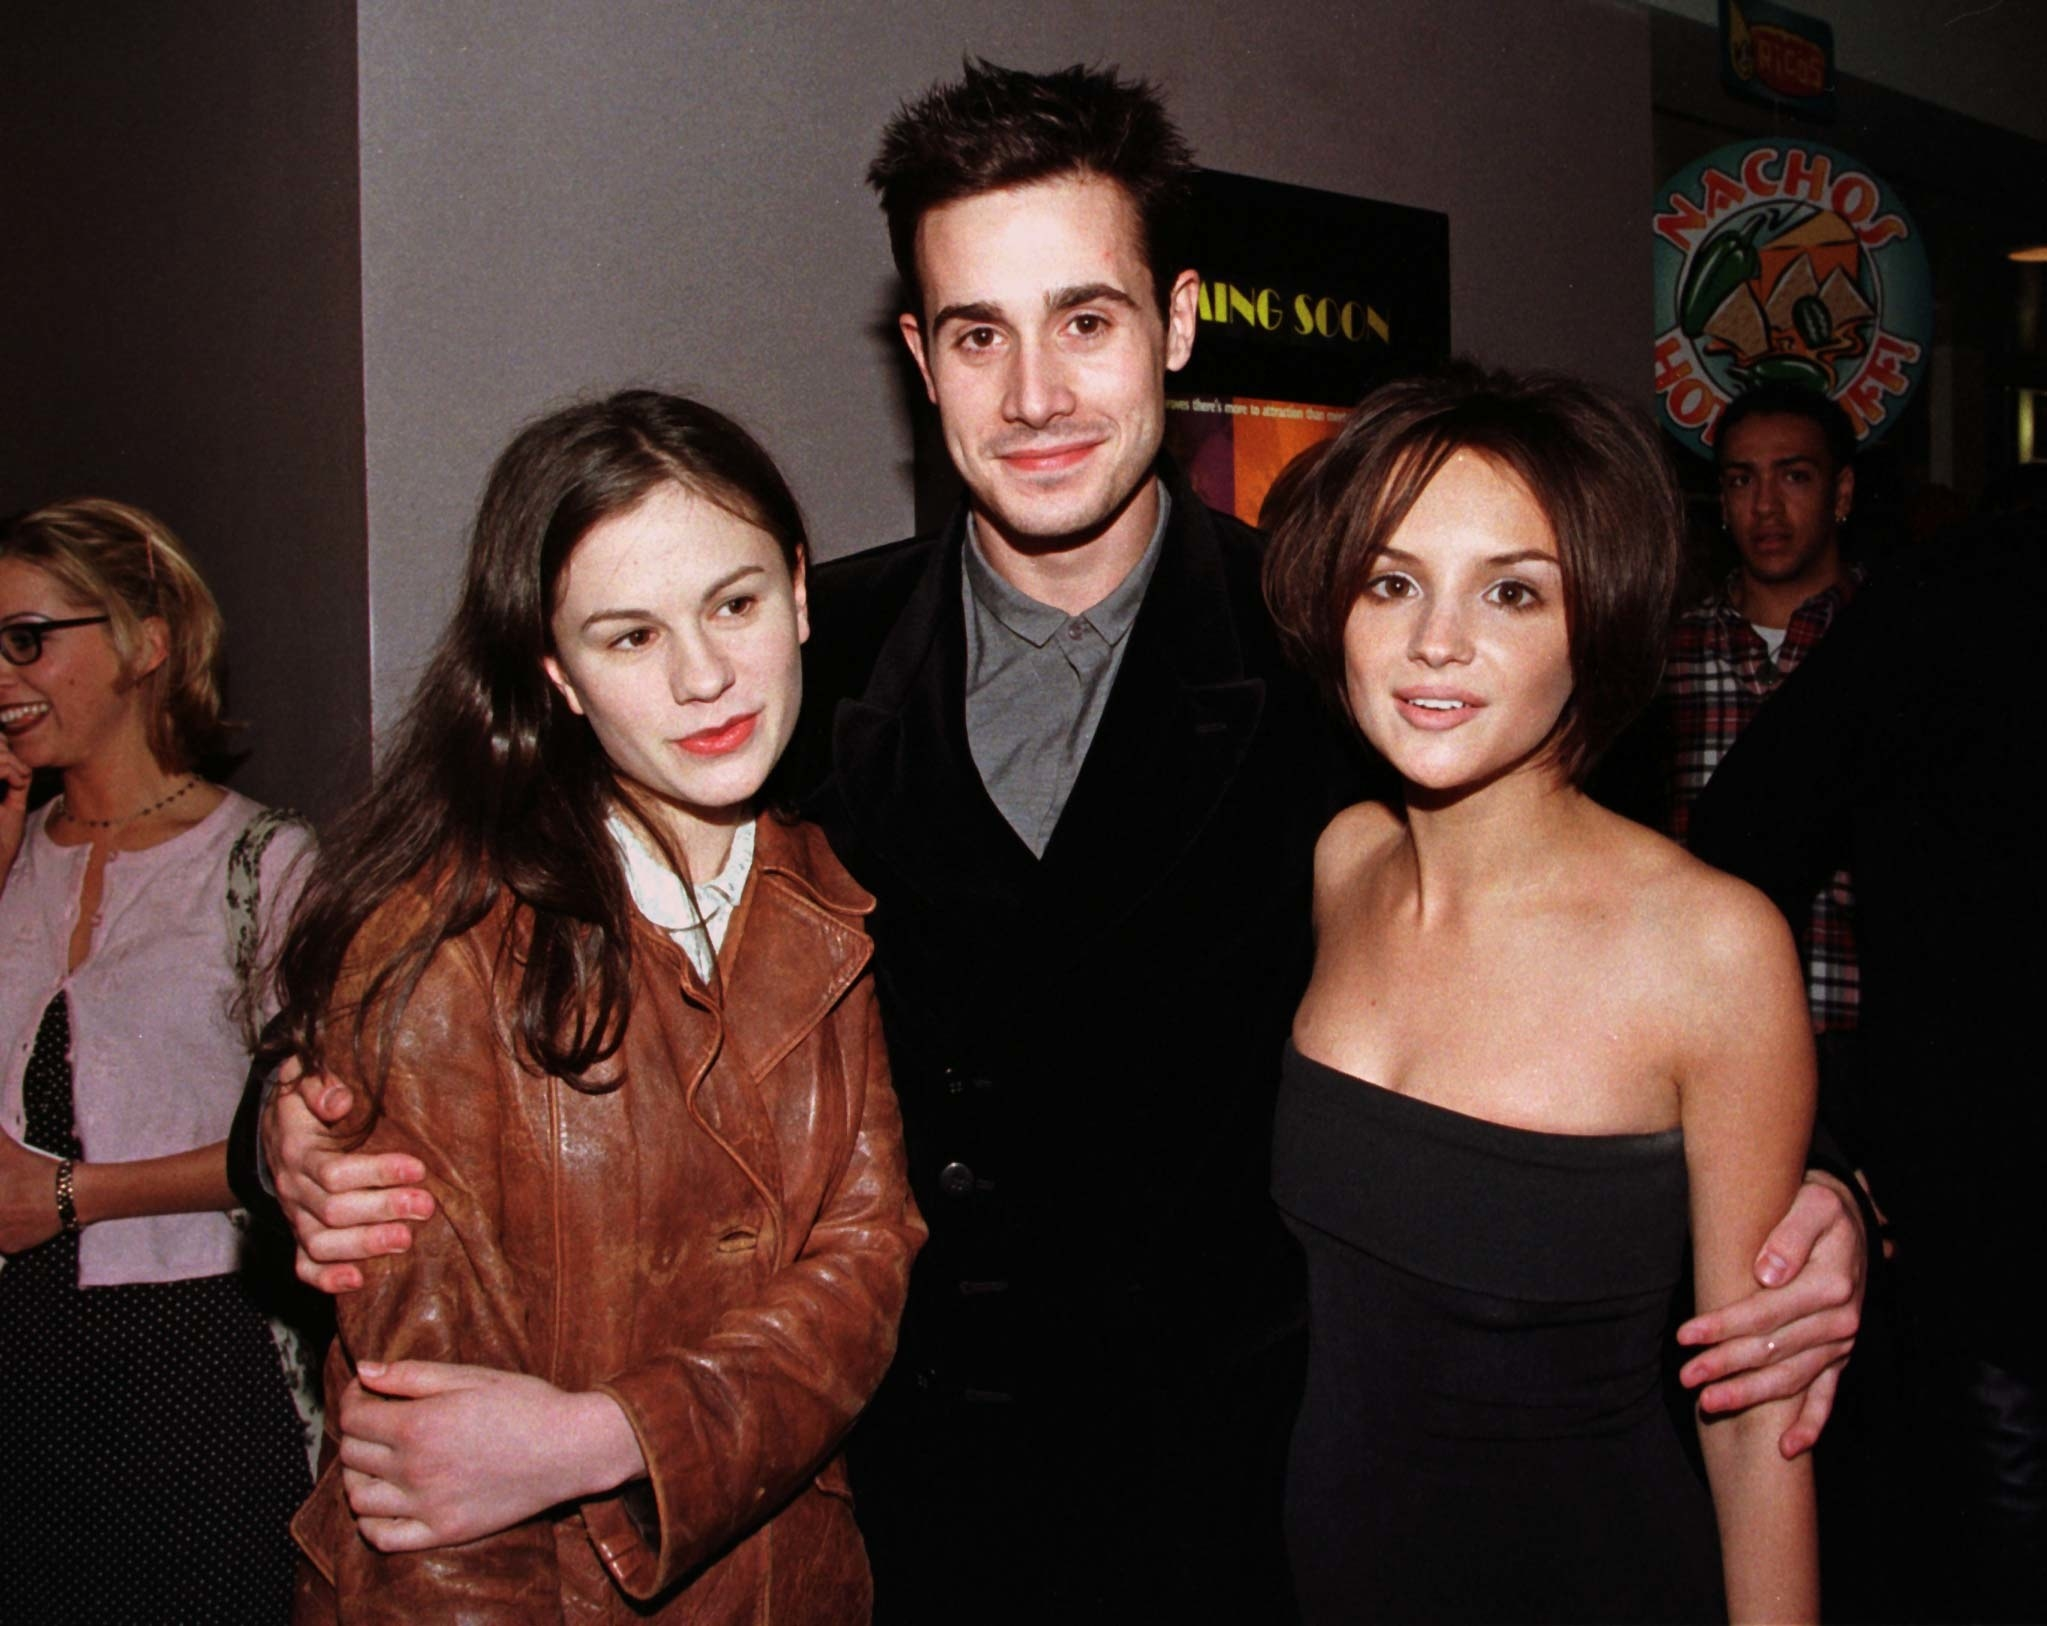 Anna Paquin, Freddie Prinze, Jr., and Rachel Leigh Cook